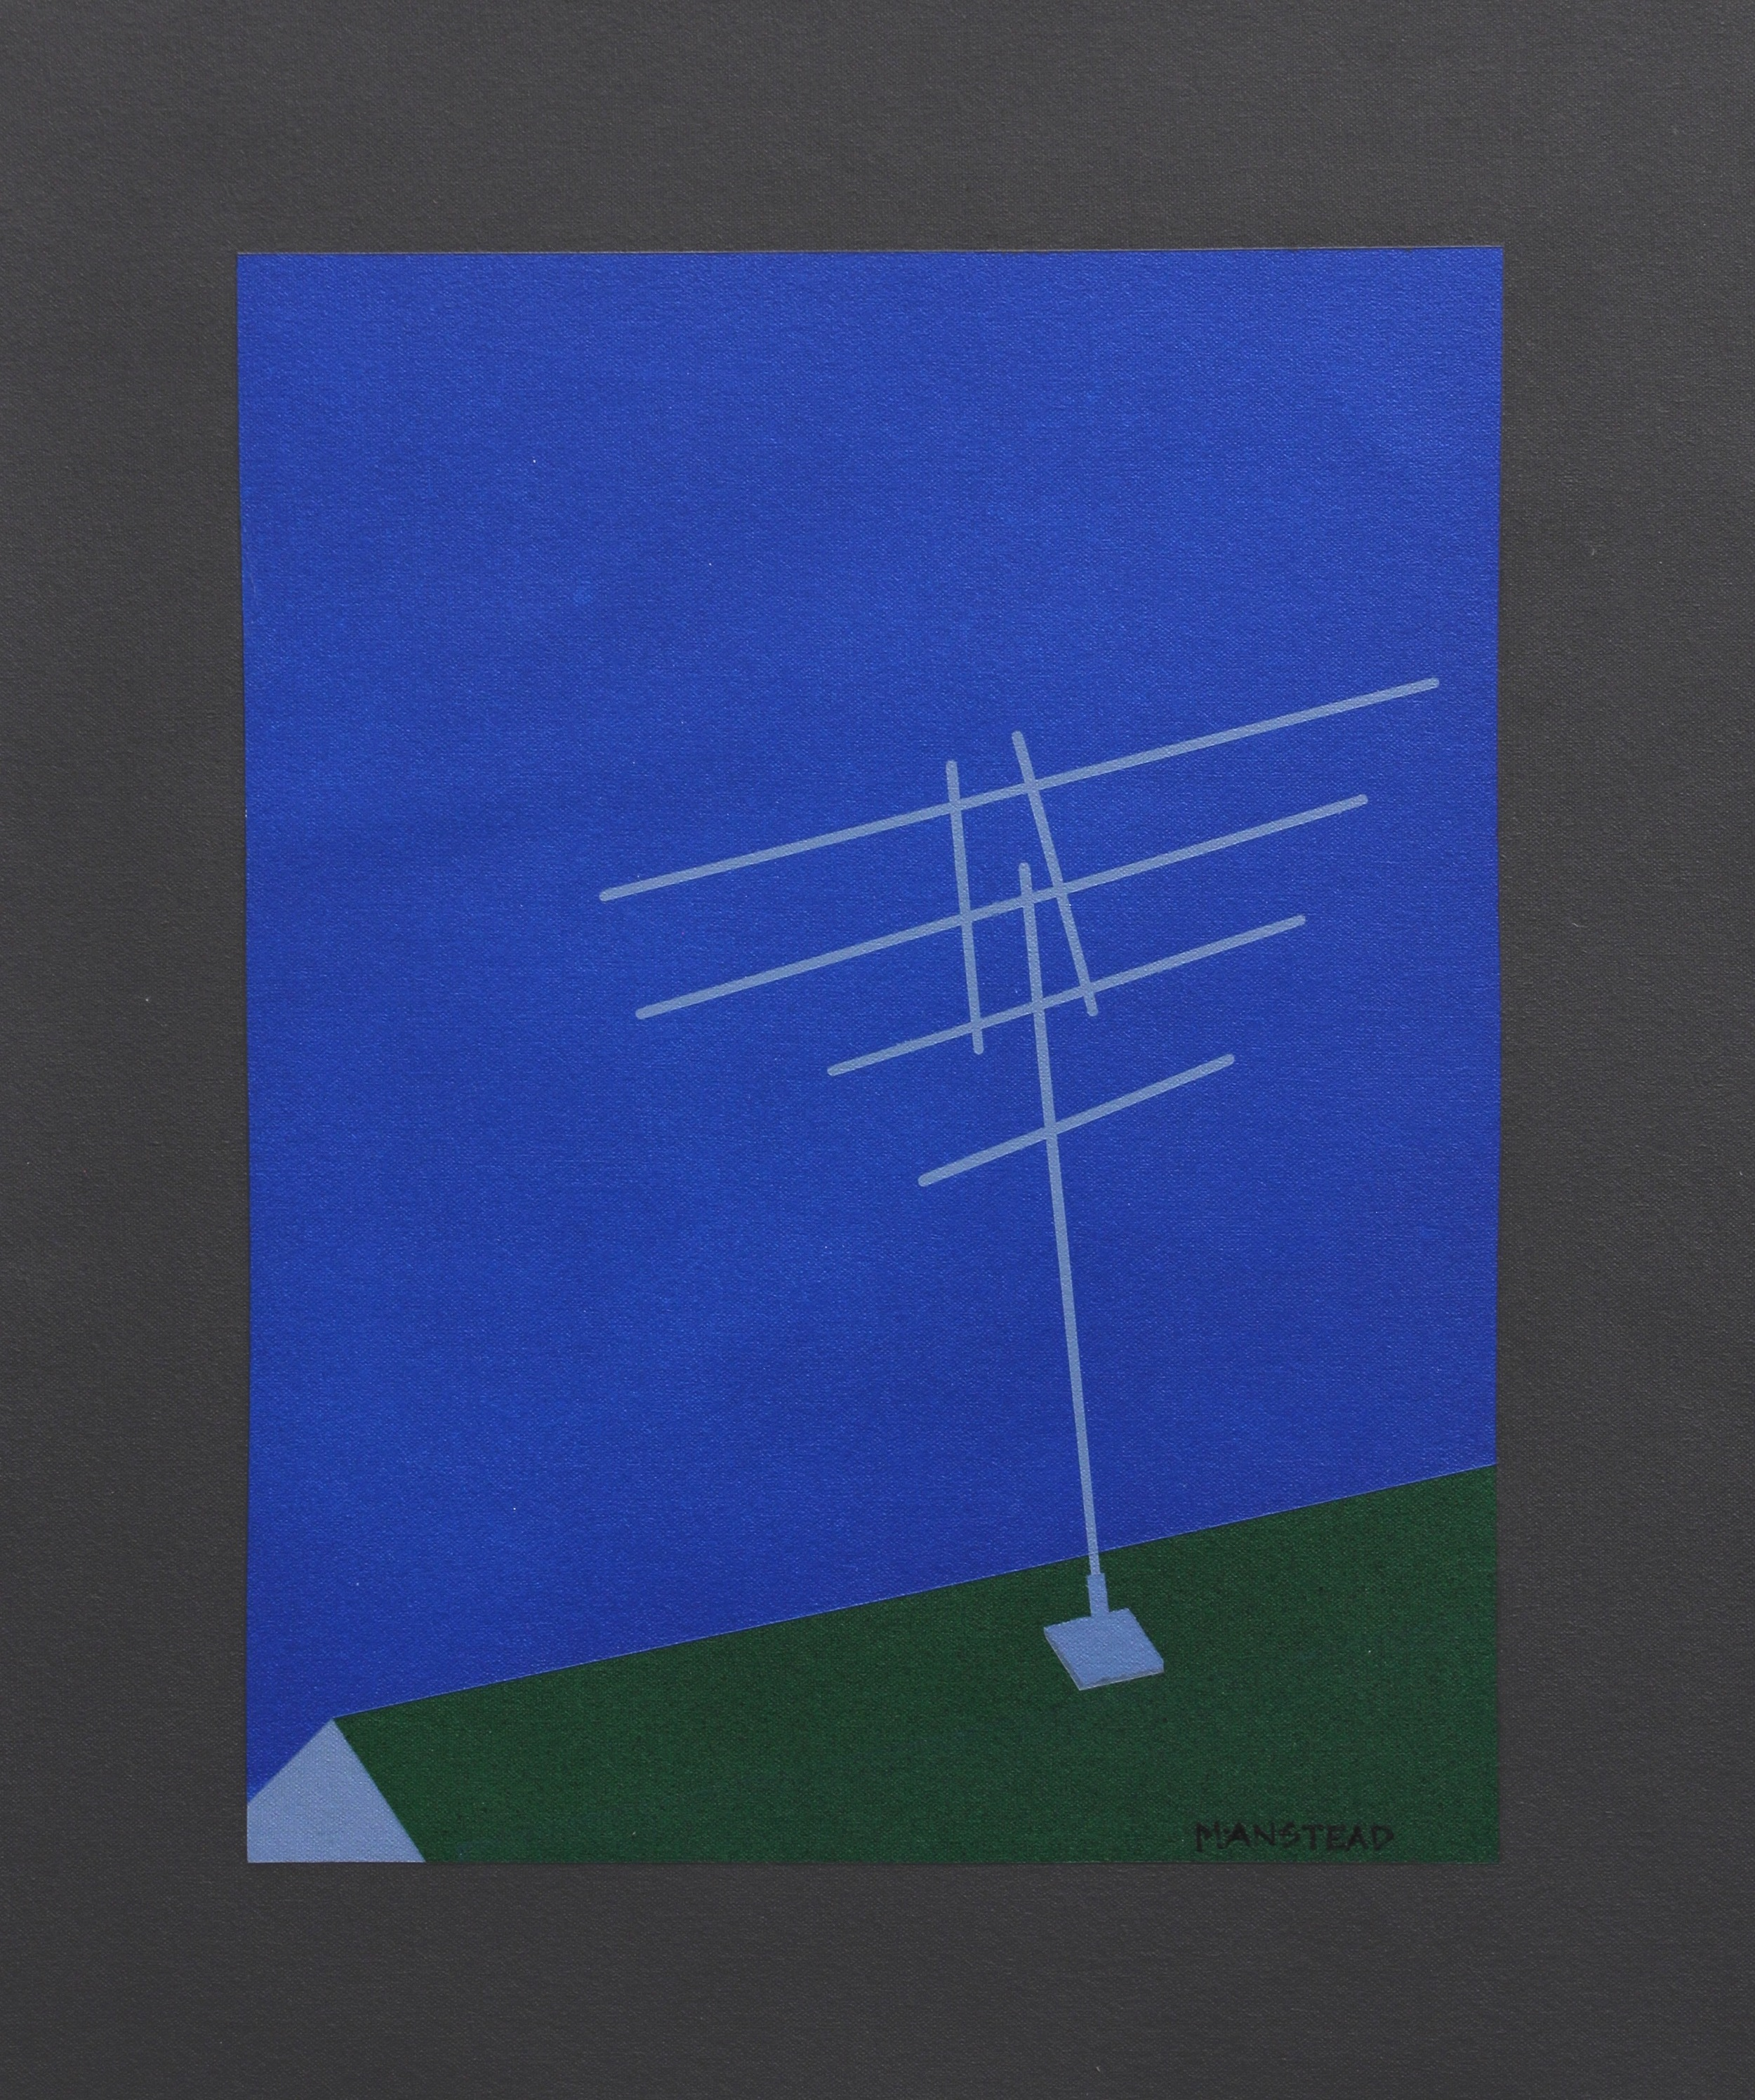 Antenna_acrylic_canvas_24x20_790.jpg